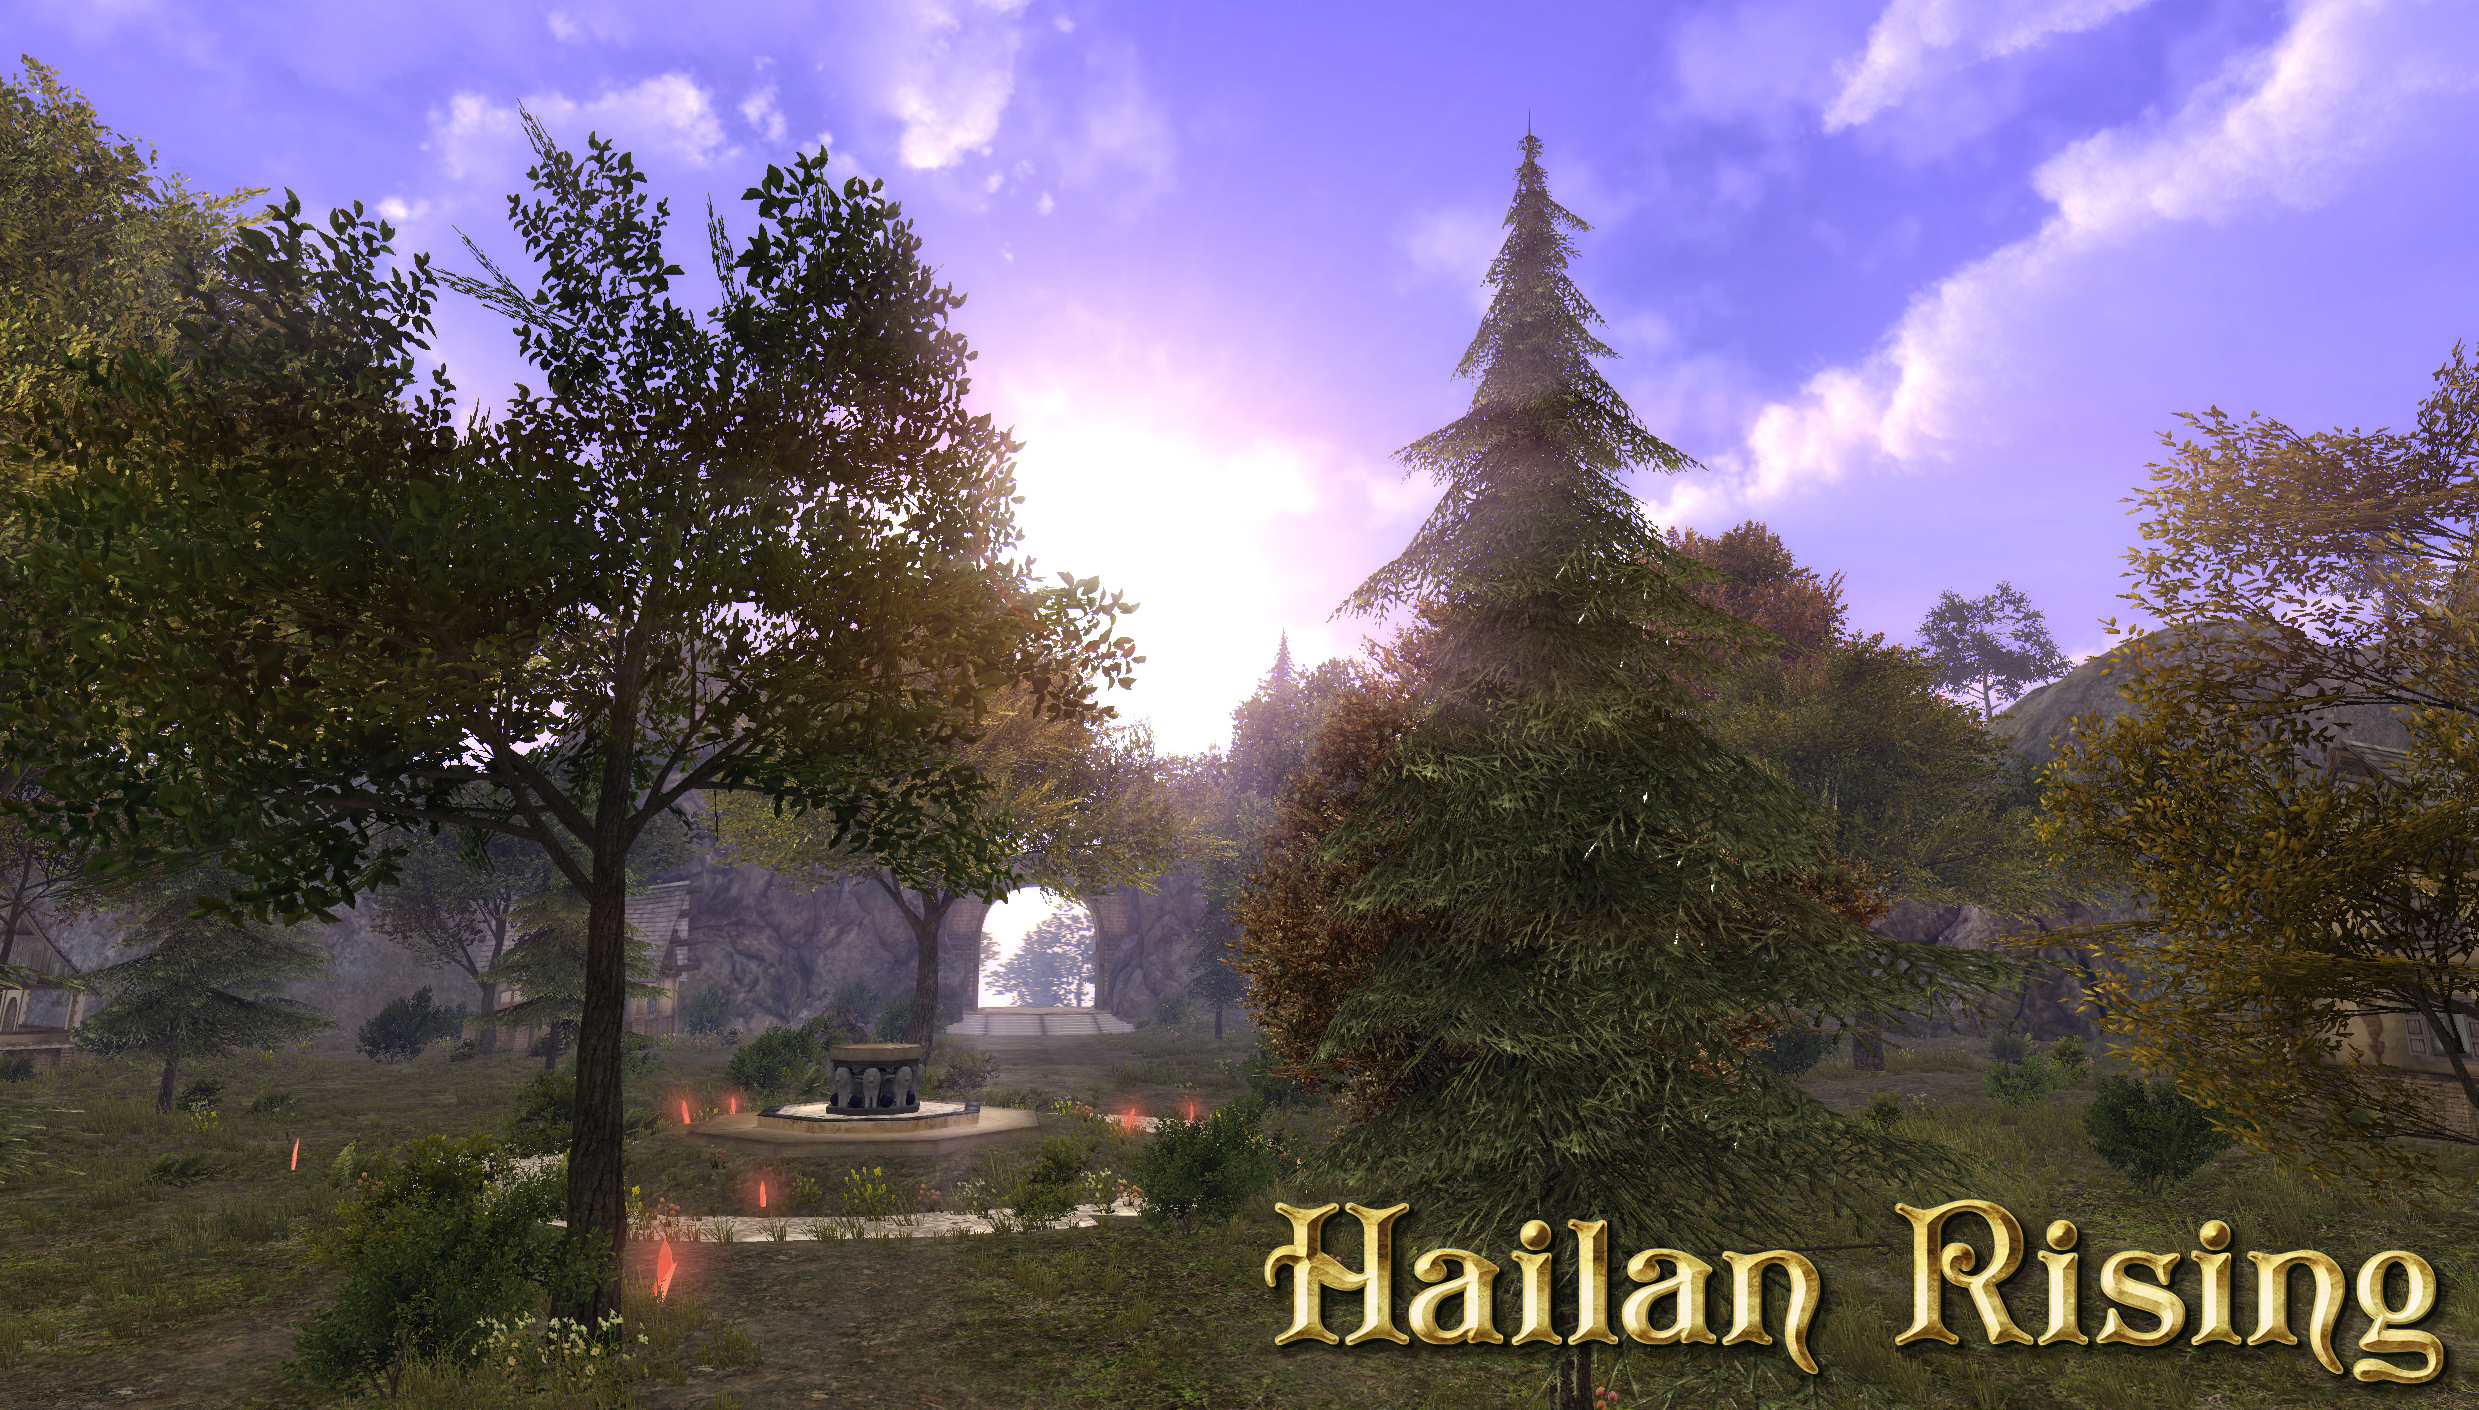 Hailan Rising wallpaper 2